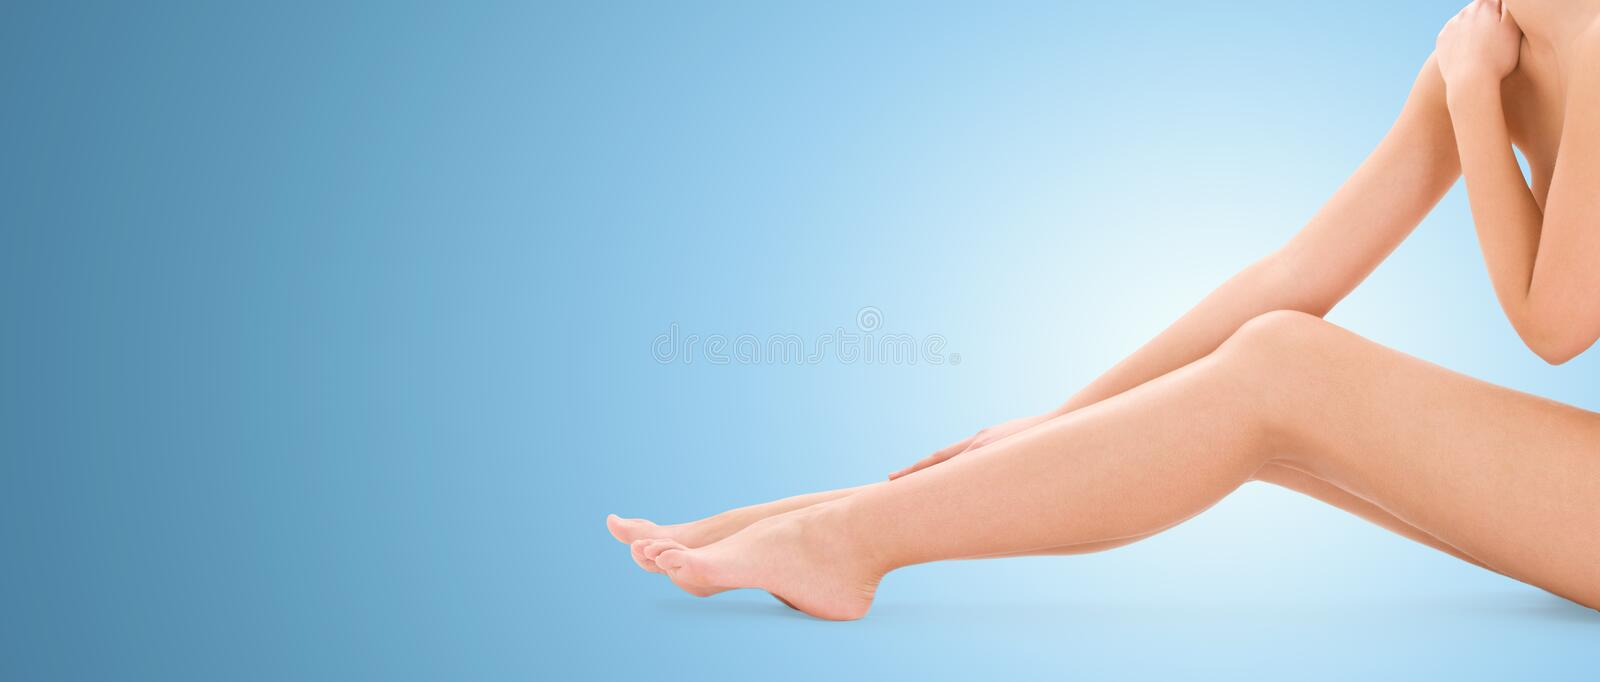 Close up of naked woman legs over blue background stock photo